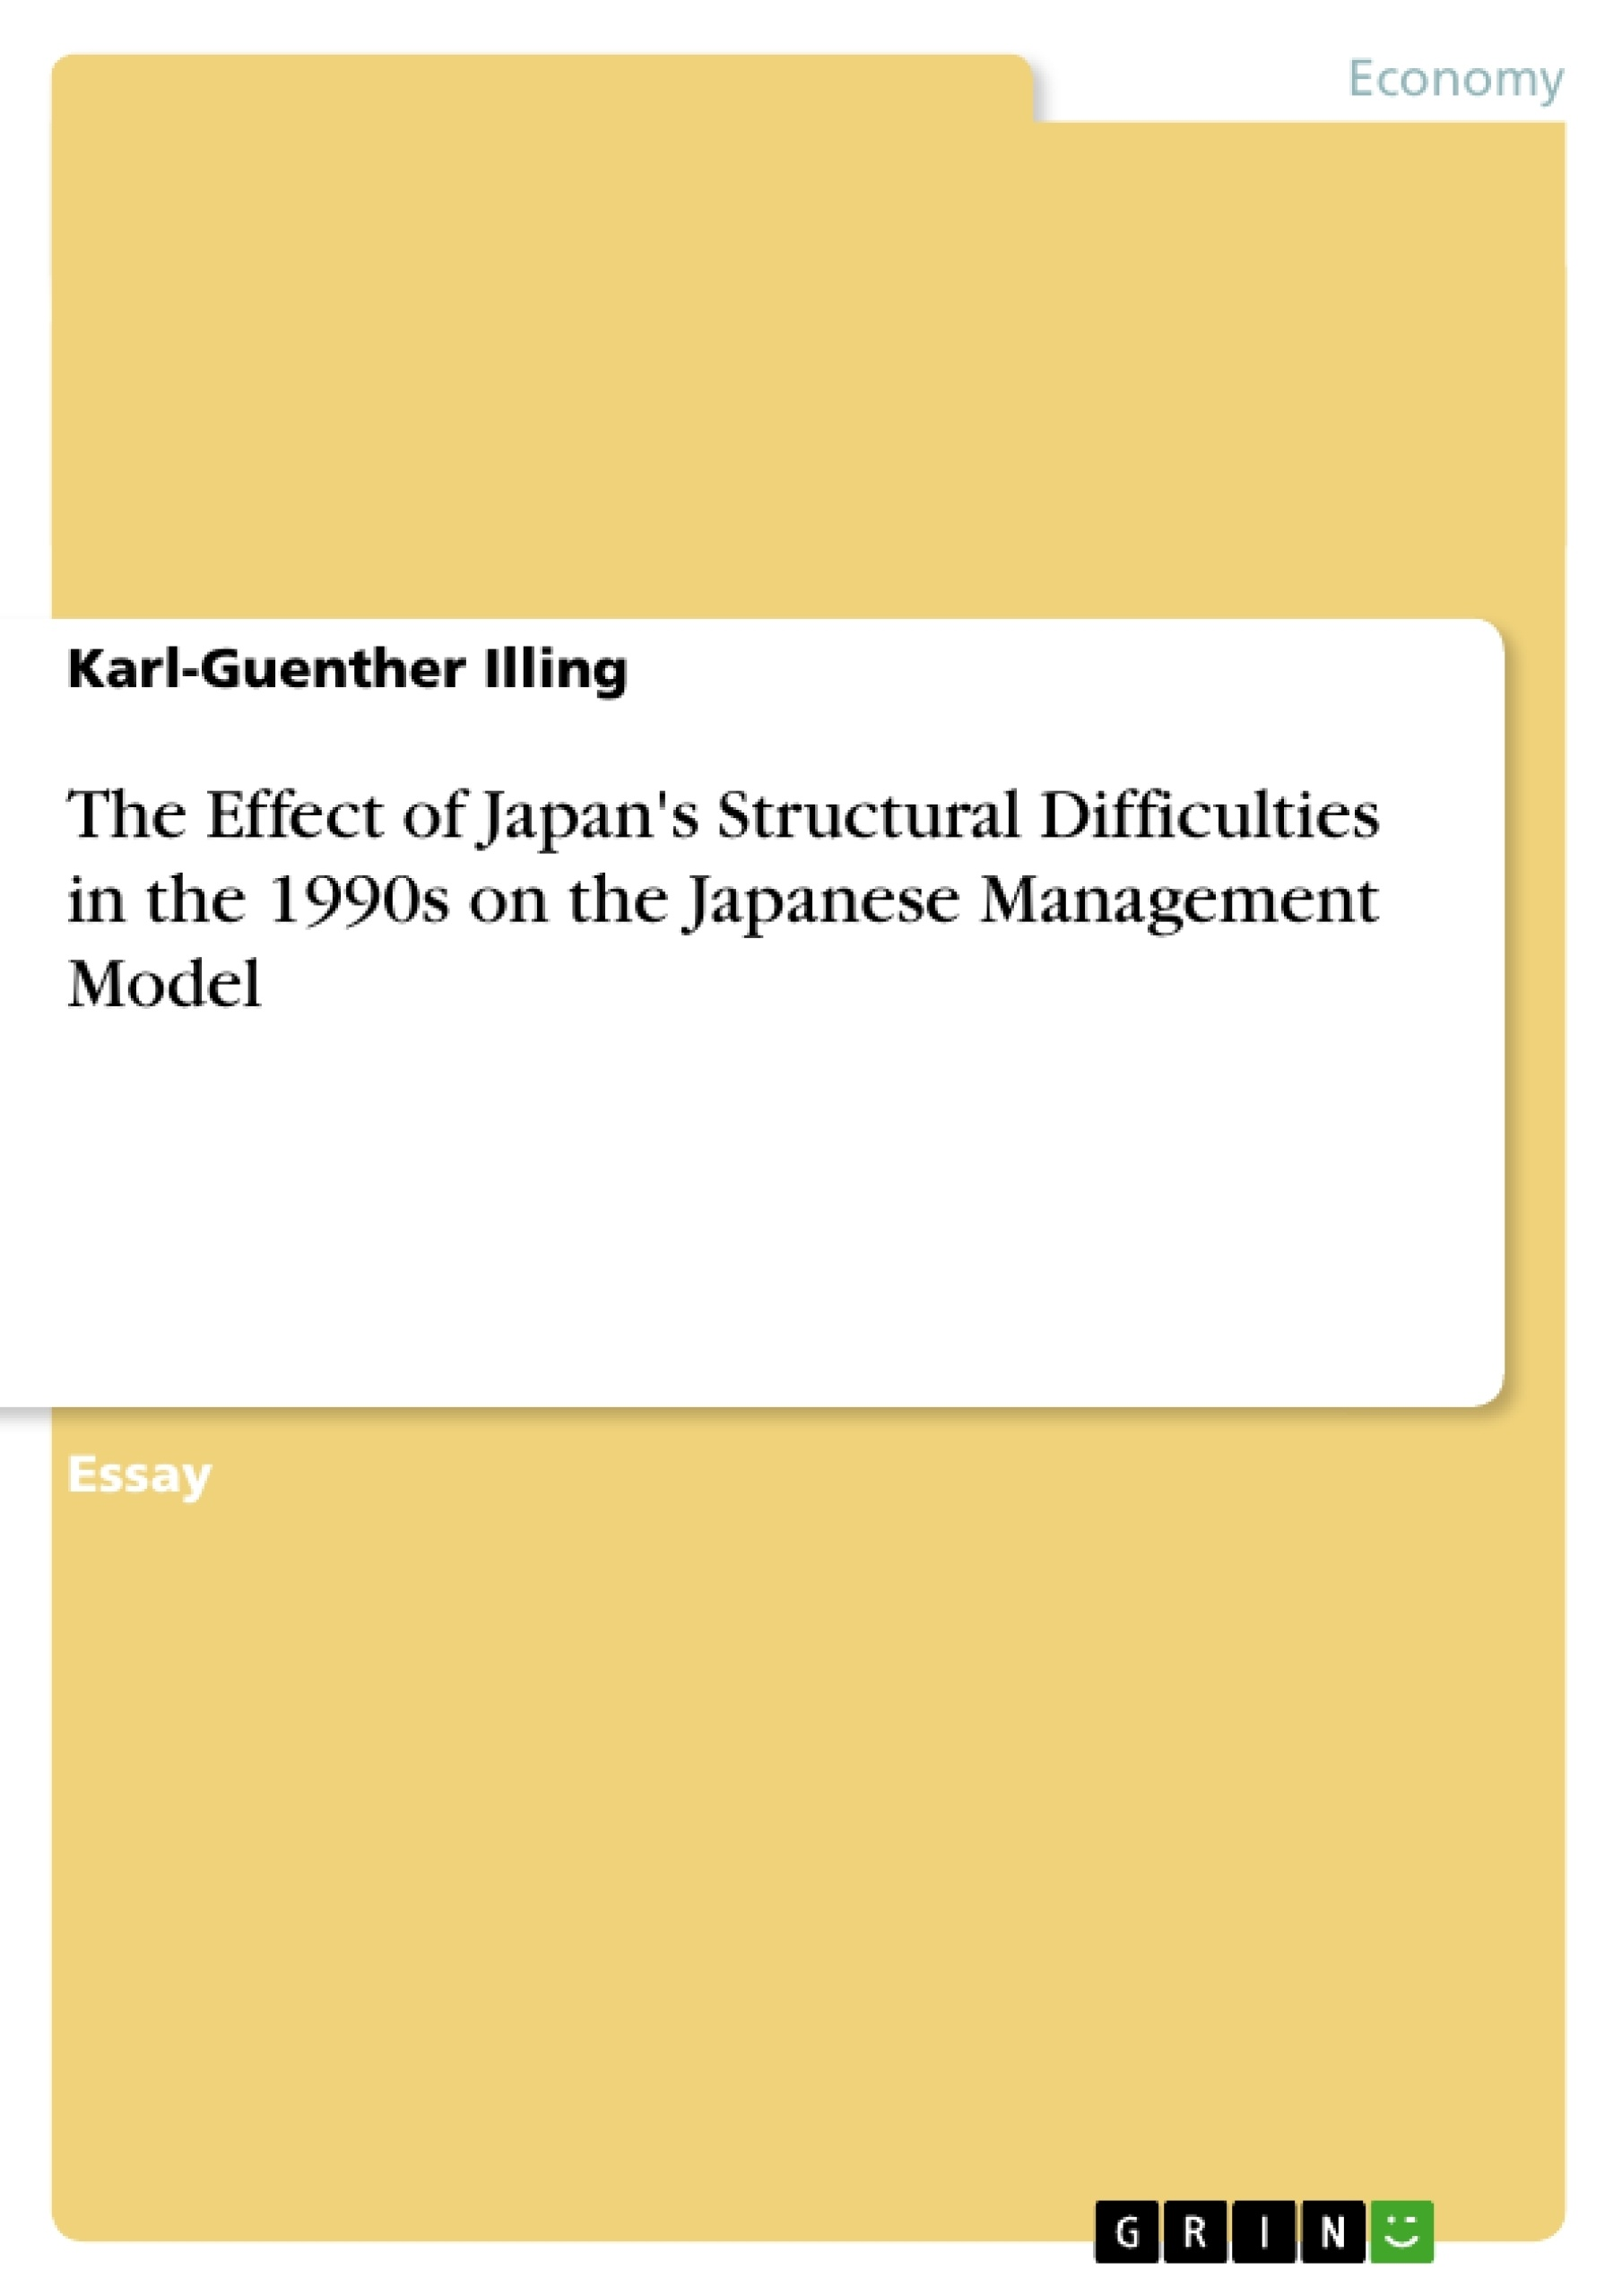 Title: The Effect of Japan's Structural Difficulties in the 1990s on the Japanese Management Model